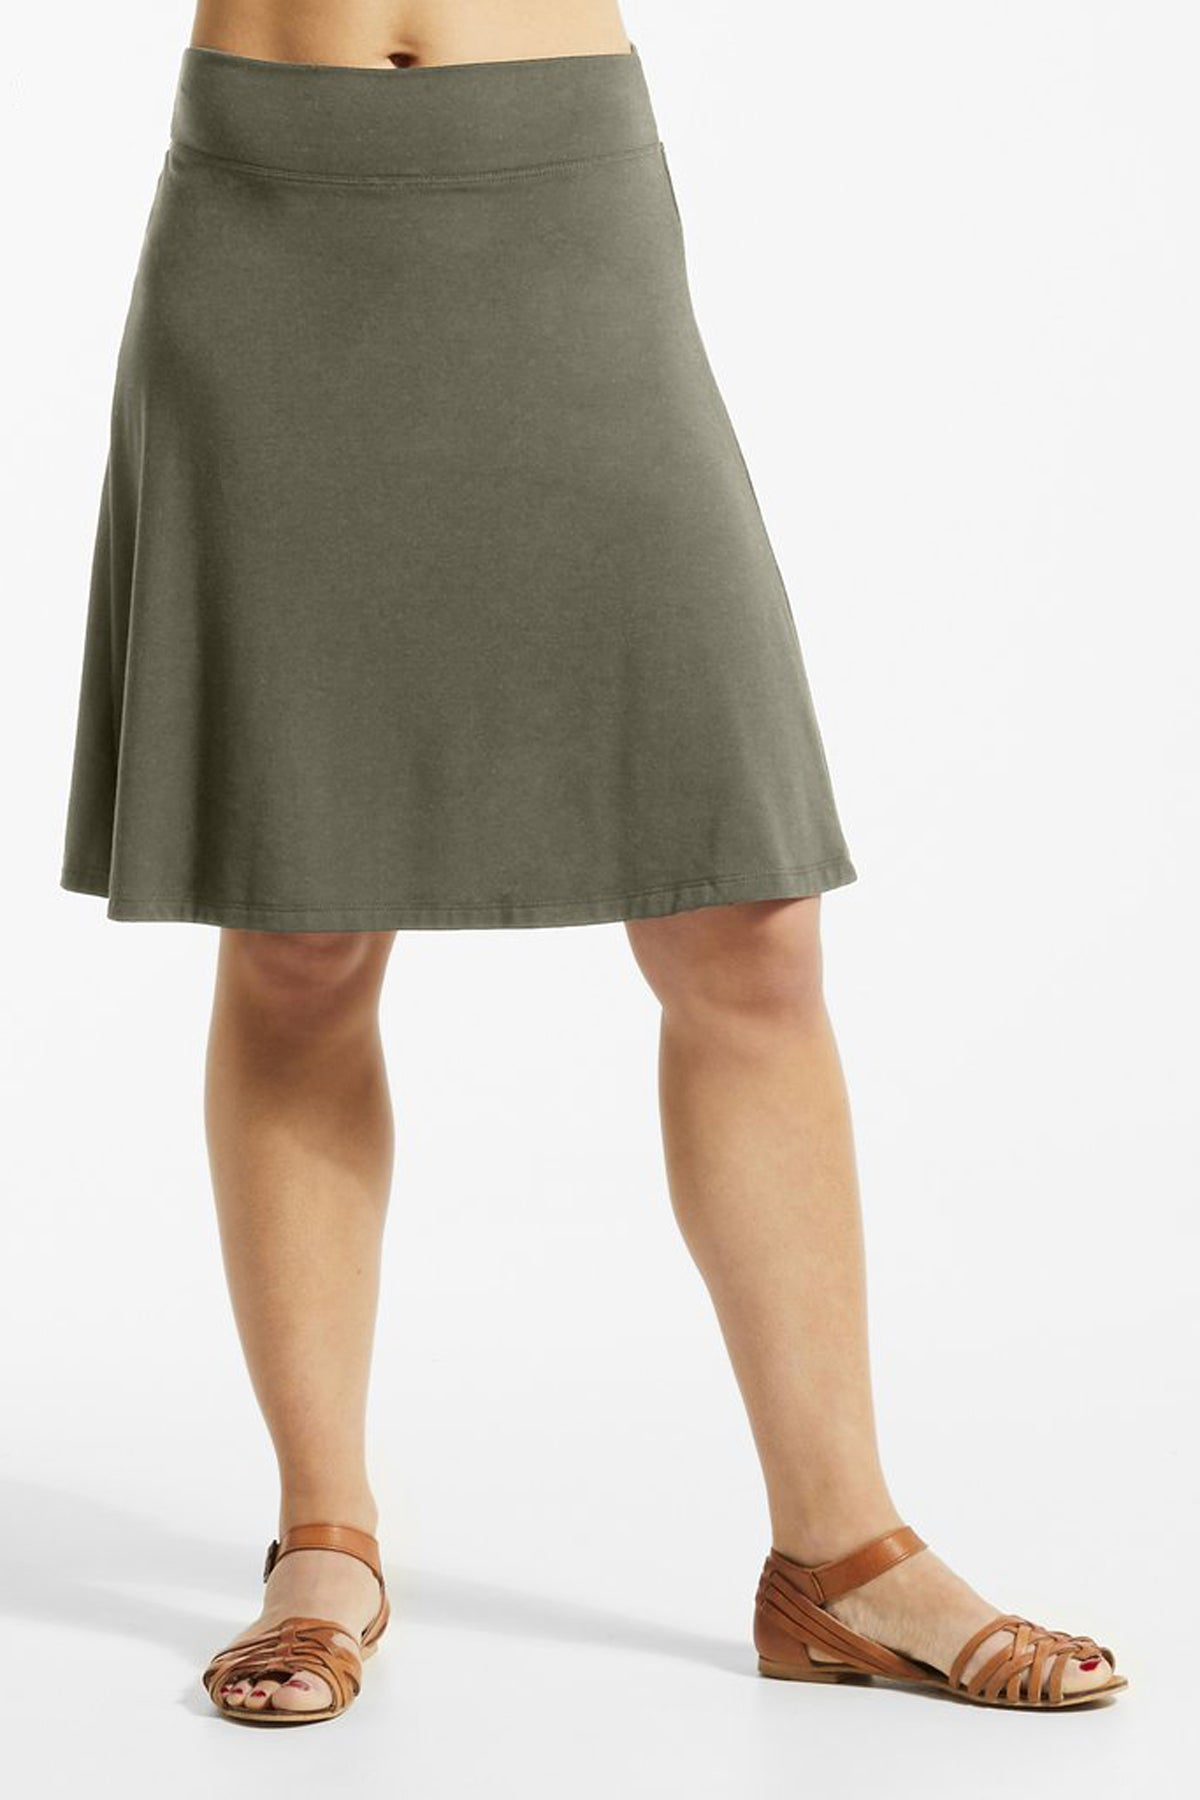 JIF Skirt by FIG, Drirelease fabric, Acacia, A-line, wide waistband, sizes XS to XL, made in Canada